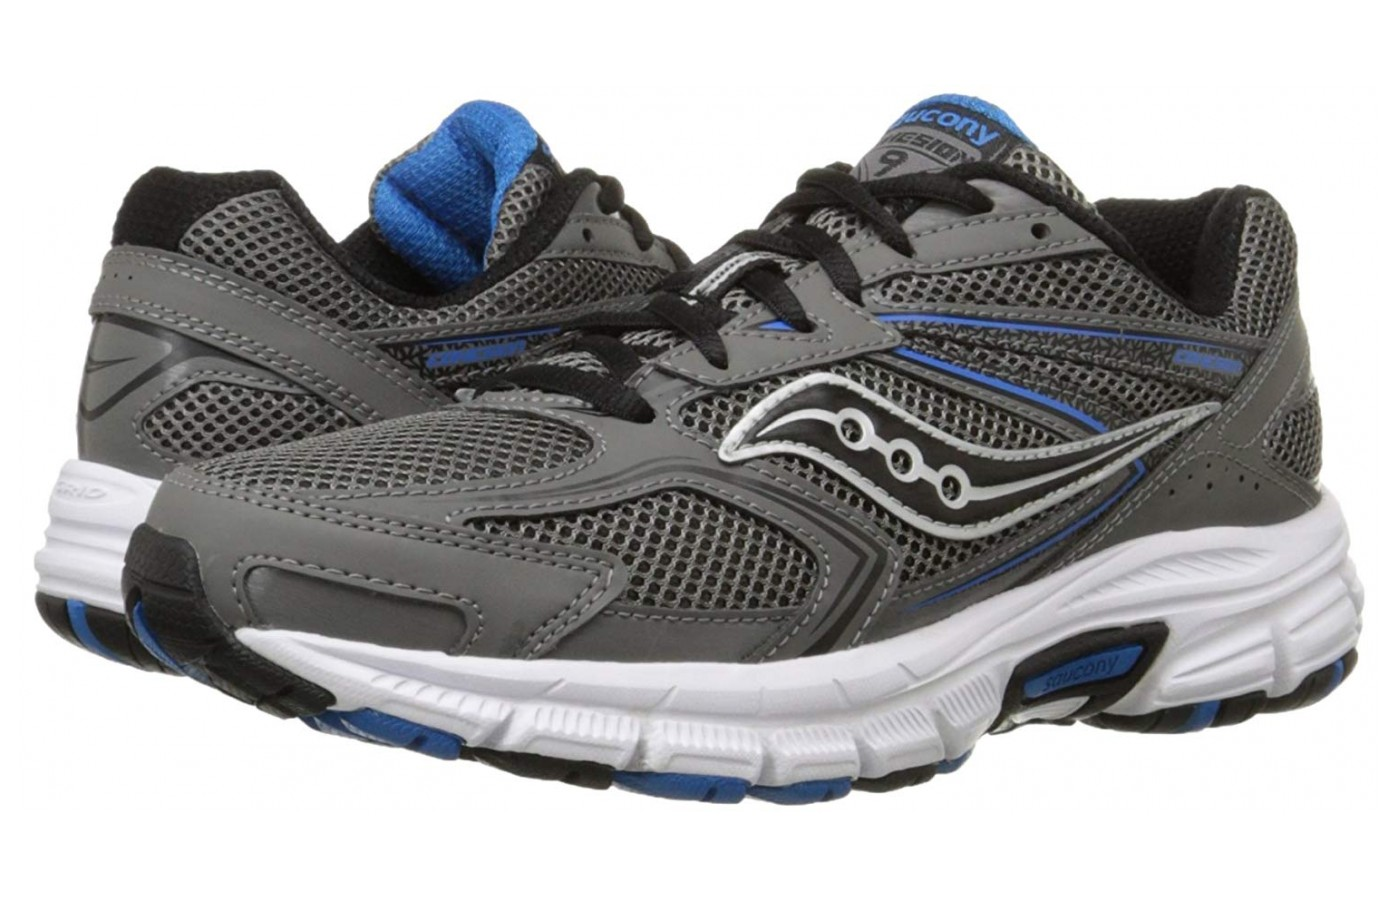 From Saucony's series of budget-friendly shoes, the Cohesion 9 has many features expected from low-price shoes as well as some that surpass expectations.